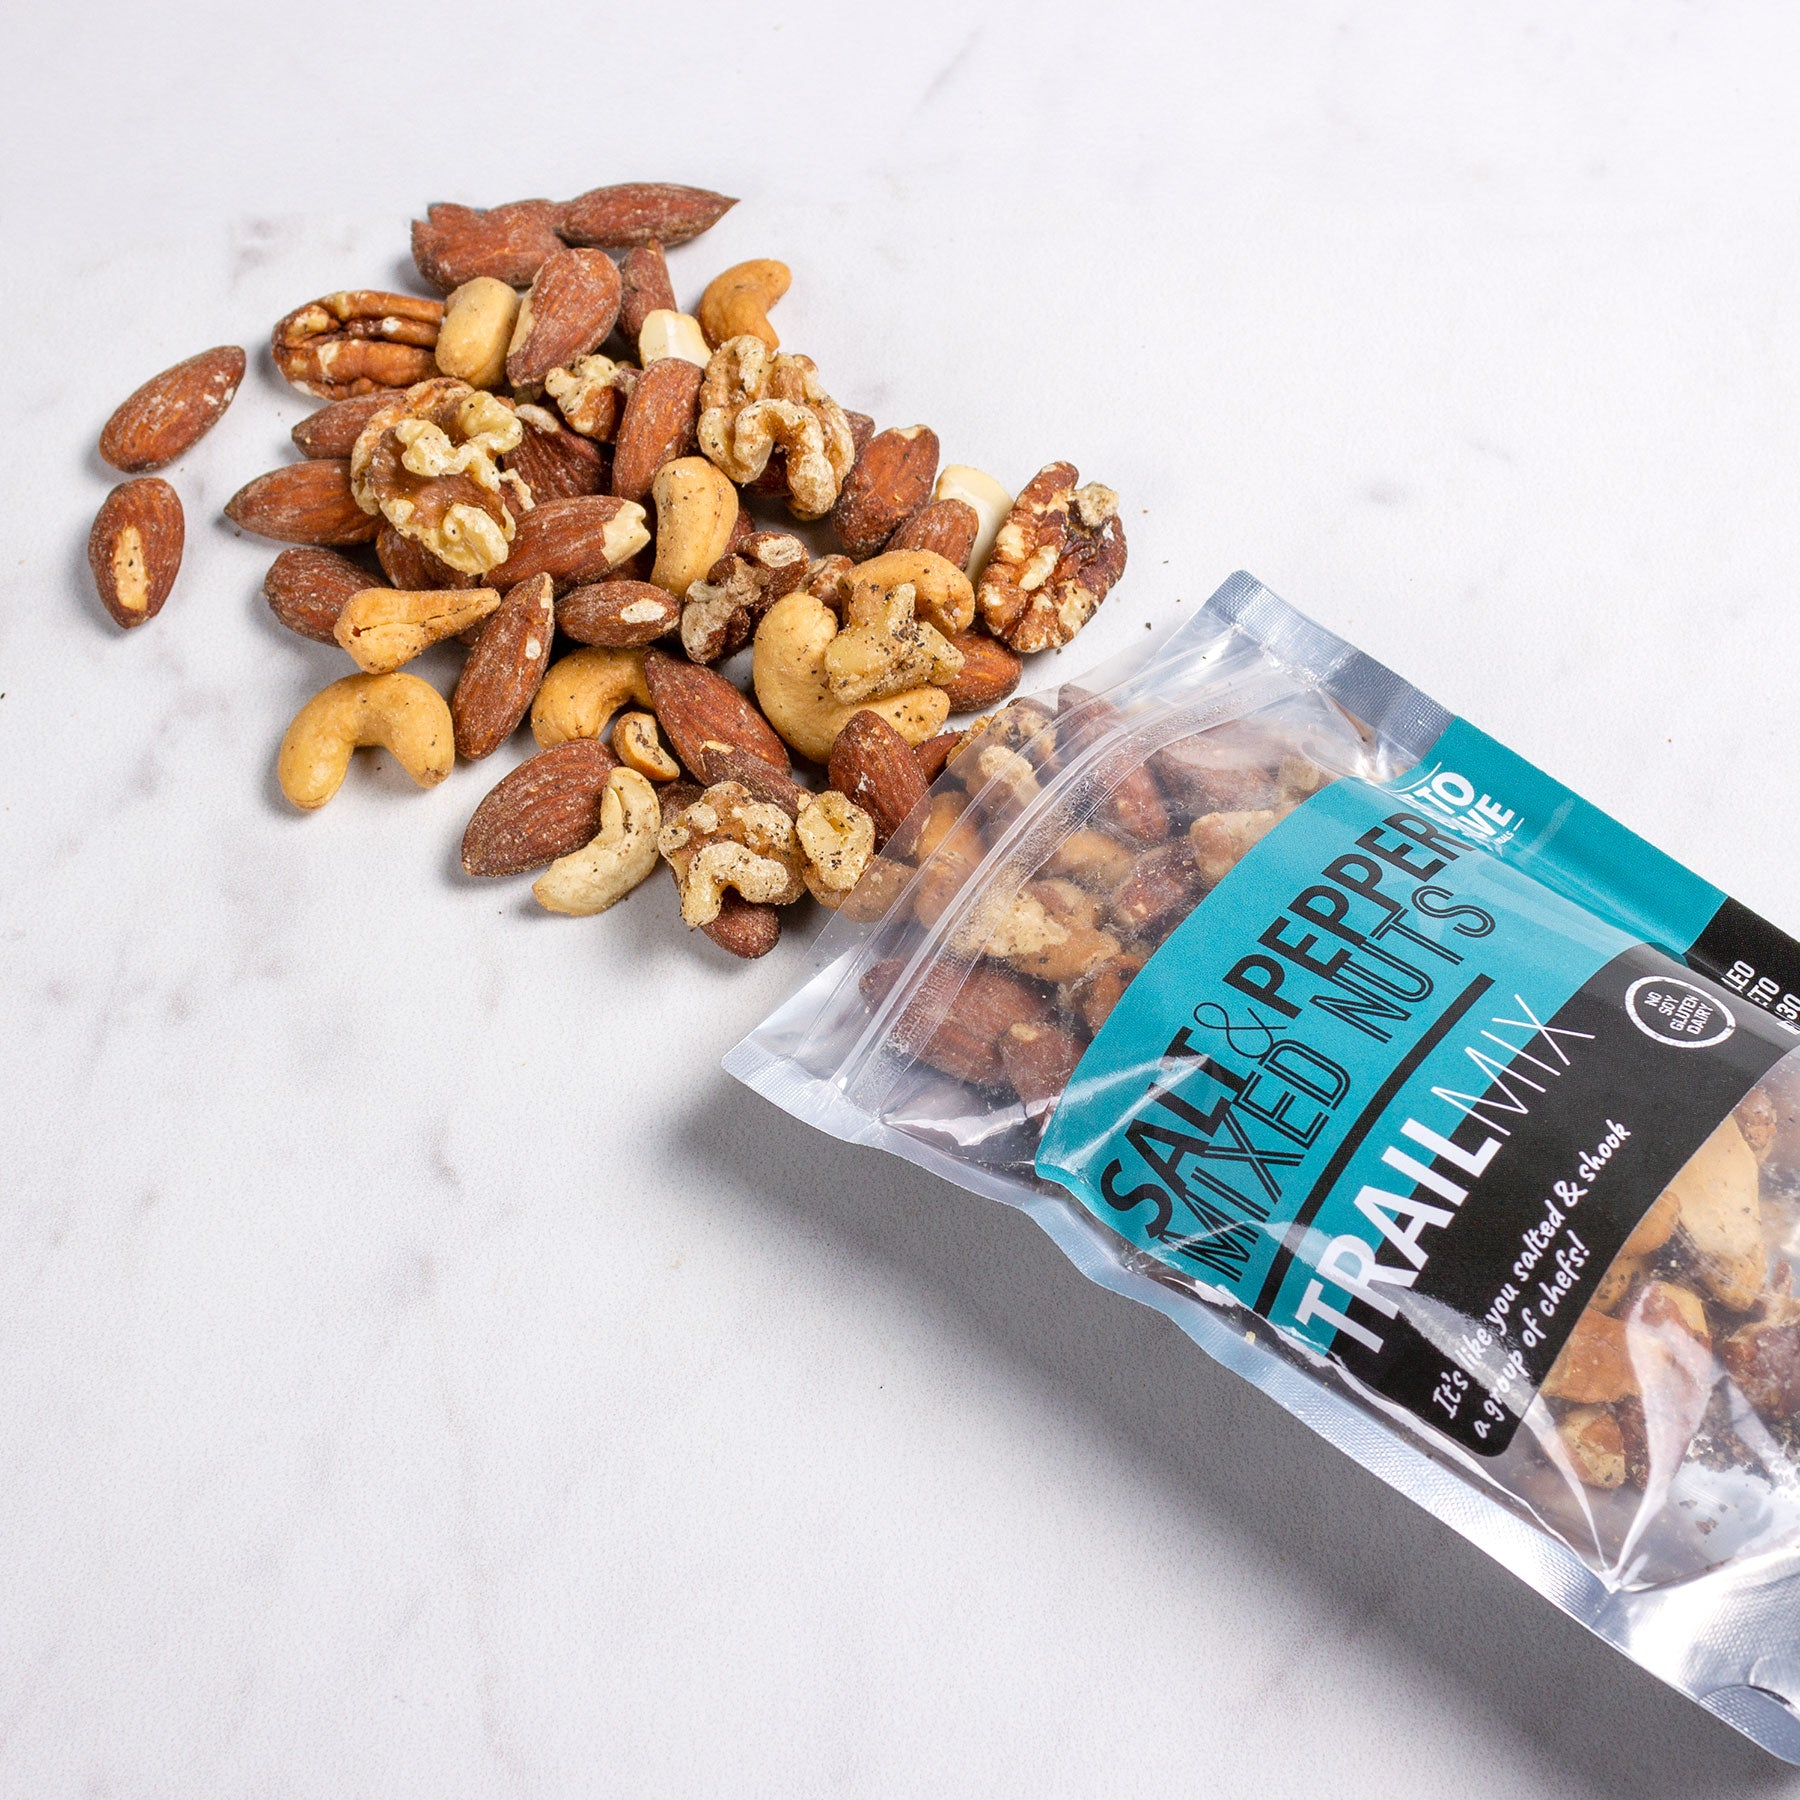 Salt & Pepper Mixed Nuts